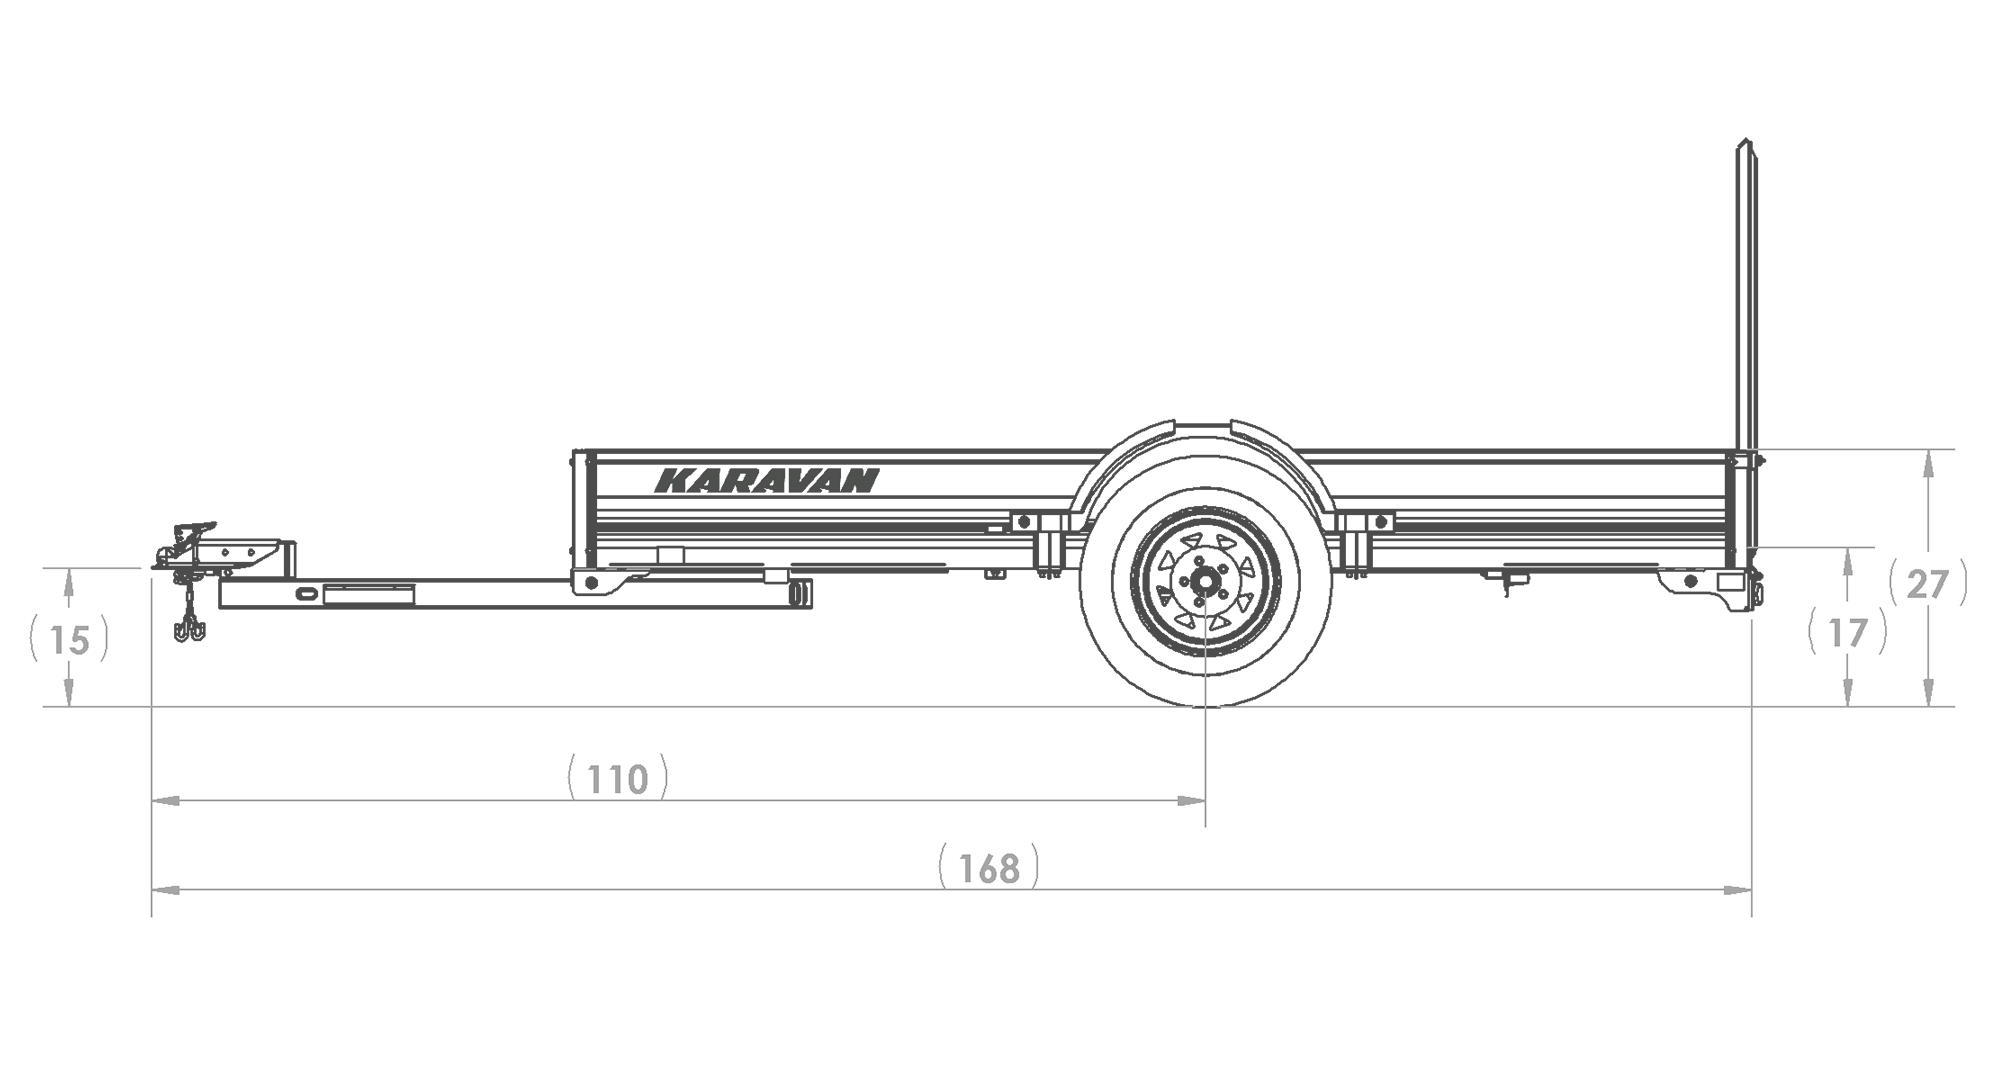 Karavan Trailer's 6 x 10 Ft. Aluminum Utility Trailer, model number SCU-299--SP-72-10-LP, Side View Measurements